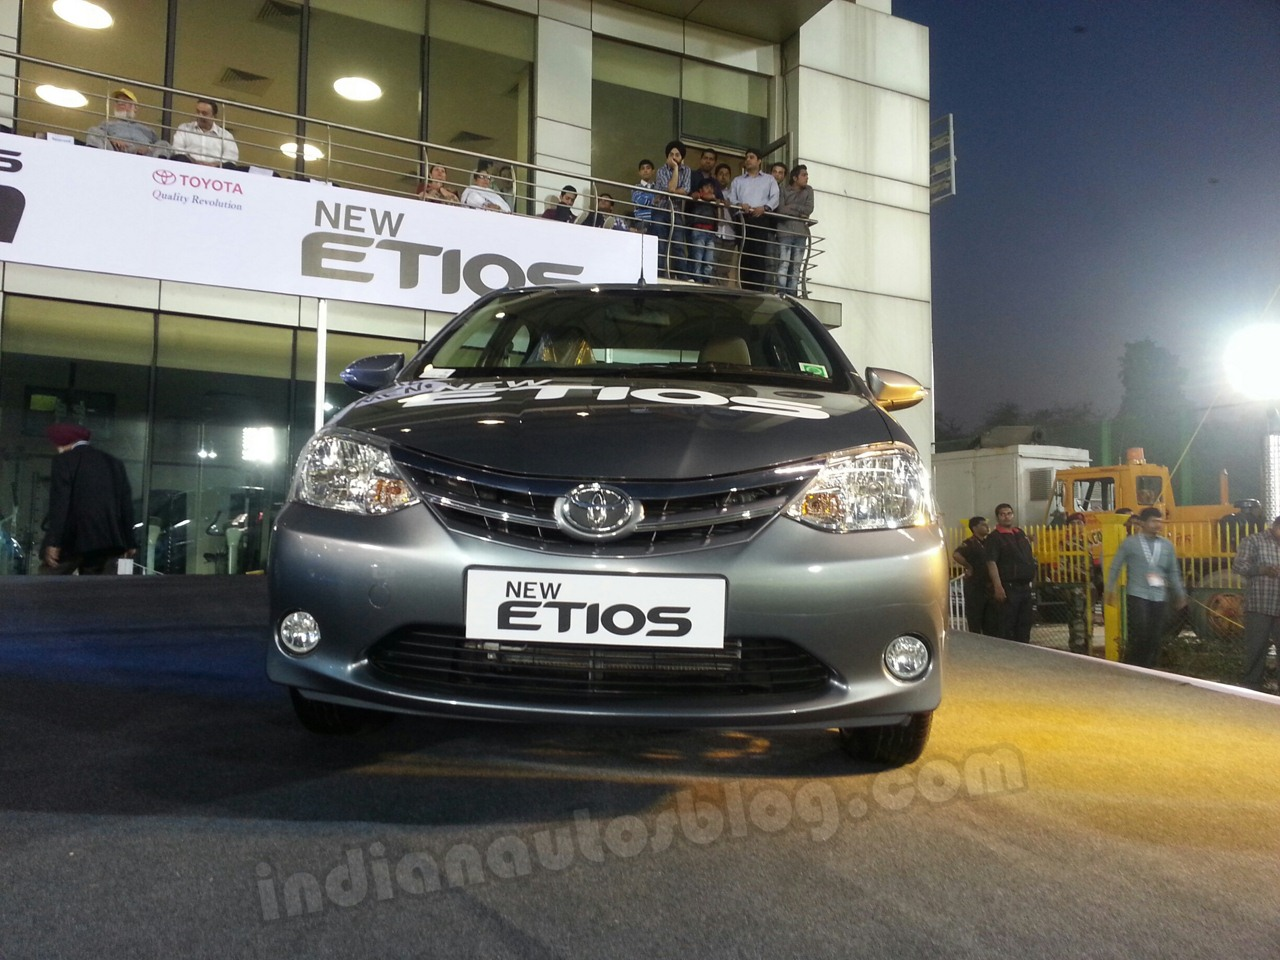 Toyota Etios facelift live images front view